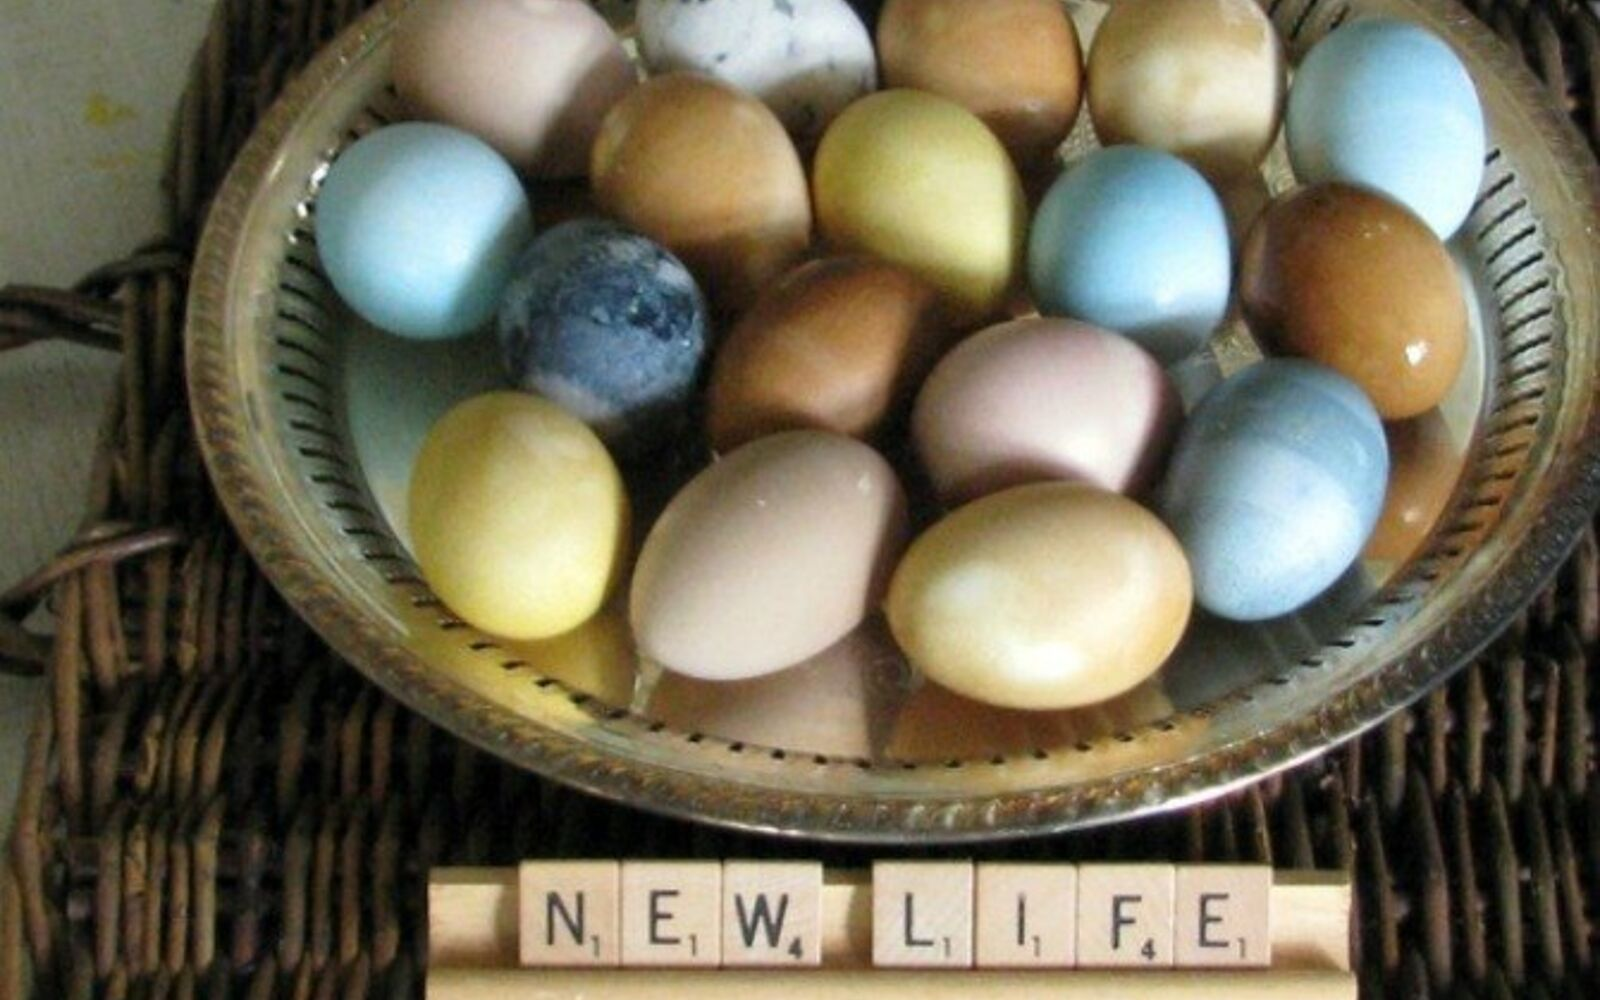 s 23 totally different ways to decorate real eggs this easter, crafts, easter decorations, Use things from the pantry as natural dyes